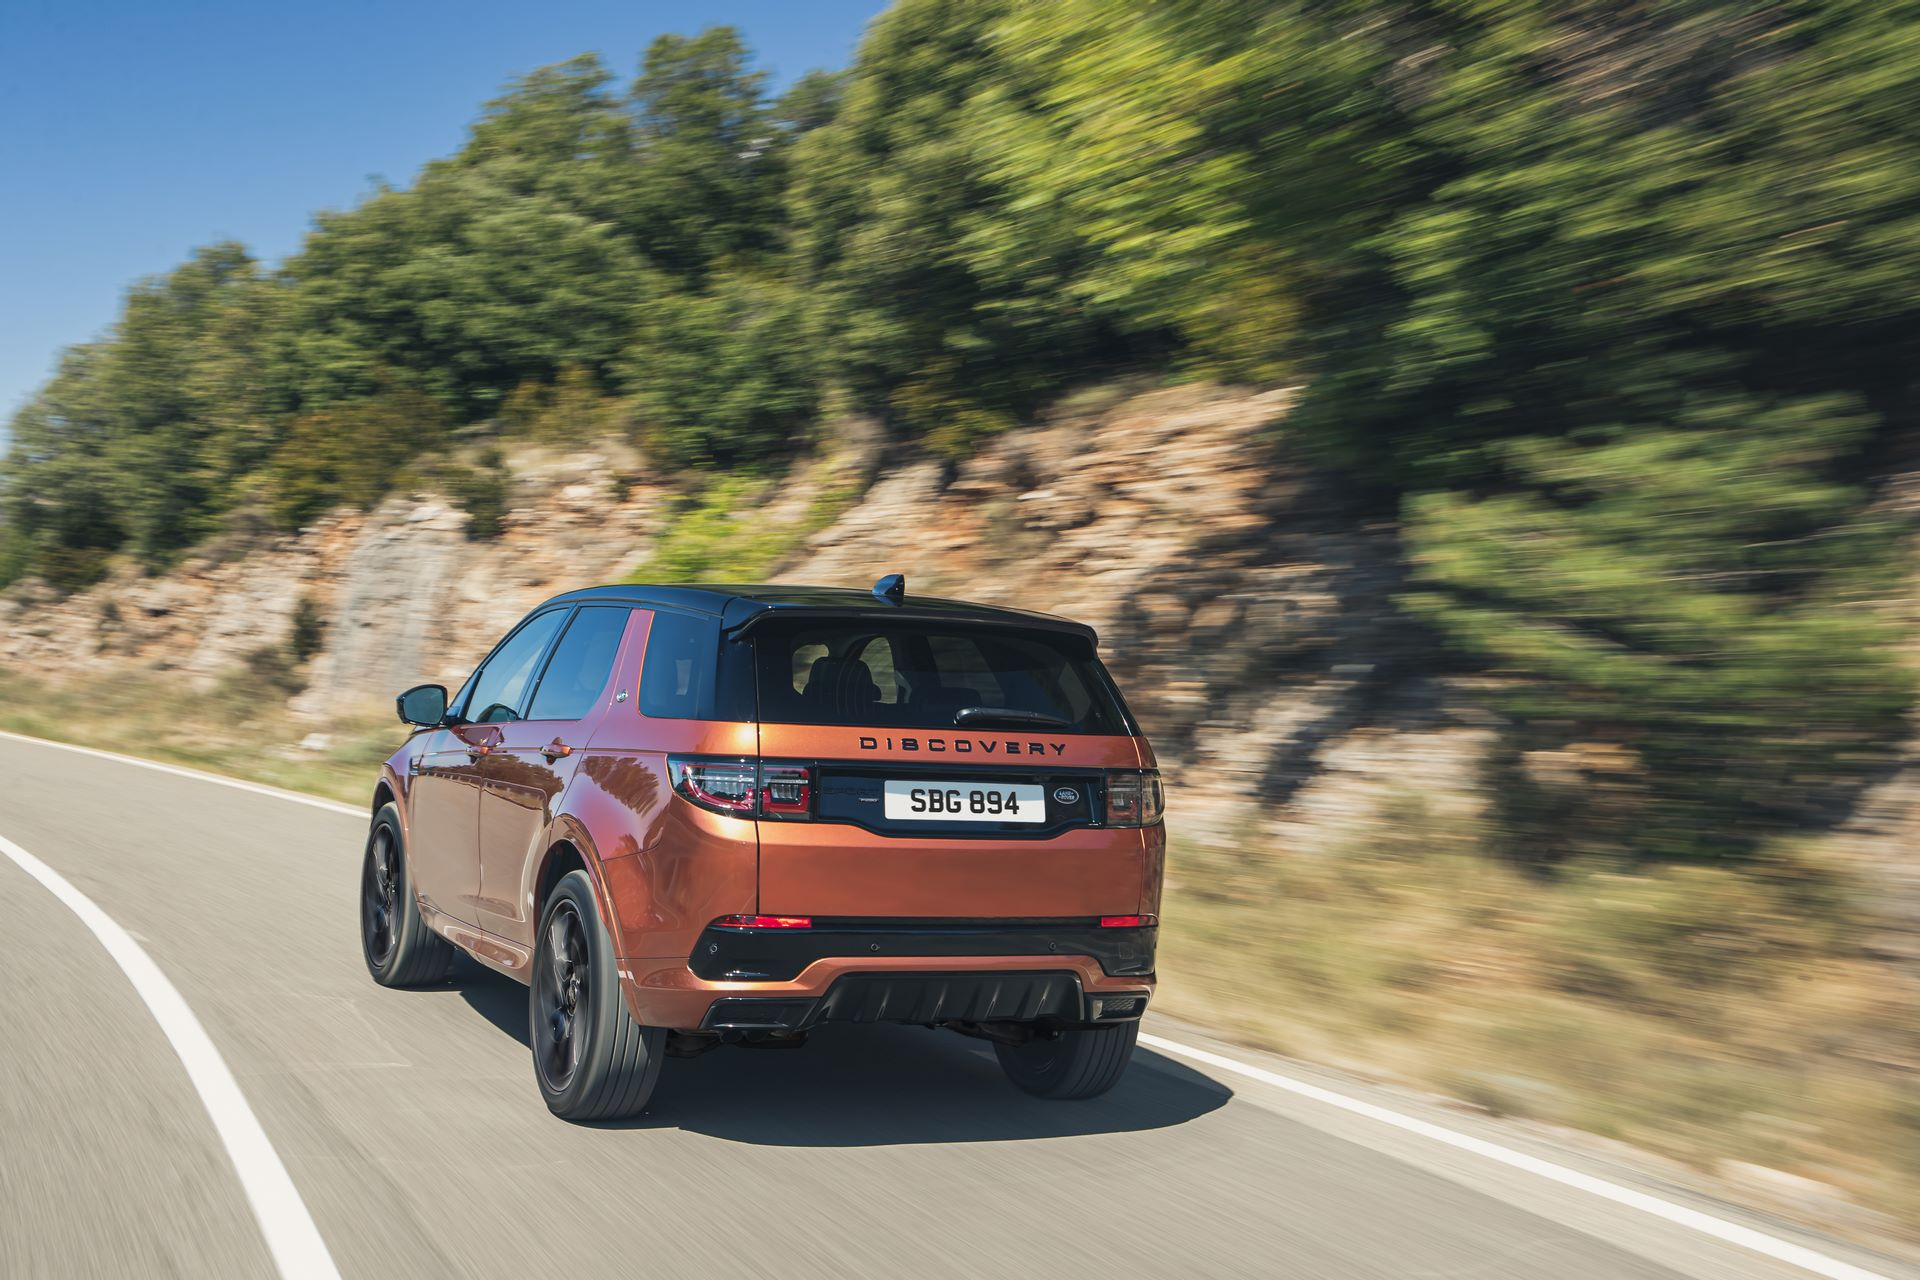 Range-Rover-Evoque-and-Land-Rover-Discovery-Sport-MHEV-diesel-3